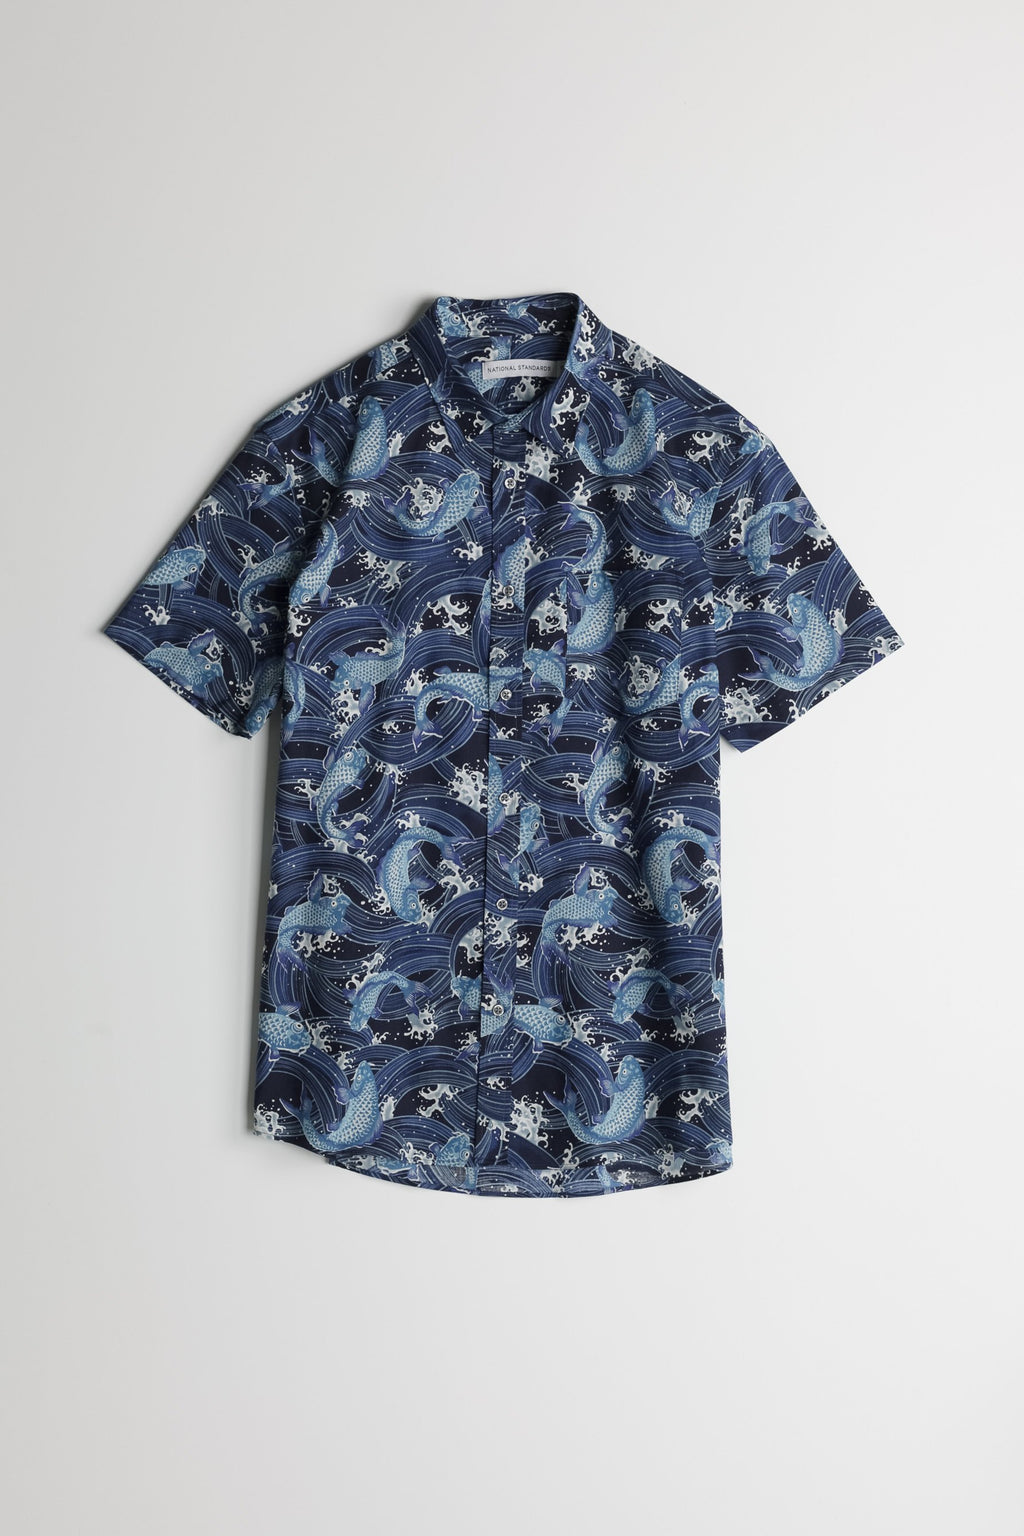 japanese-koi-print-in-navy 01